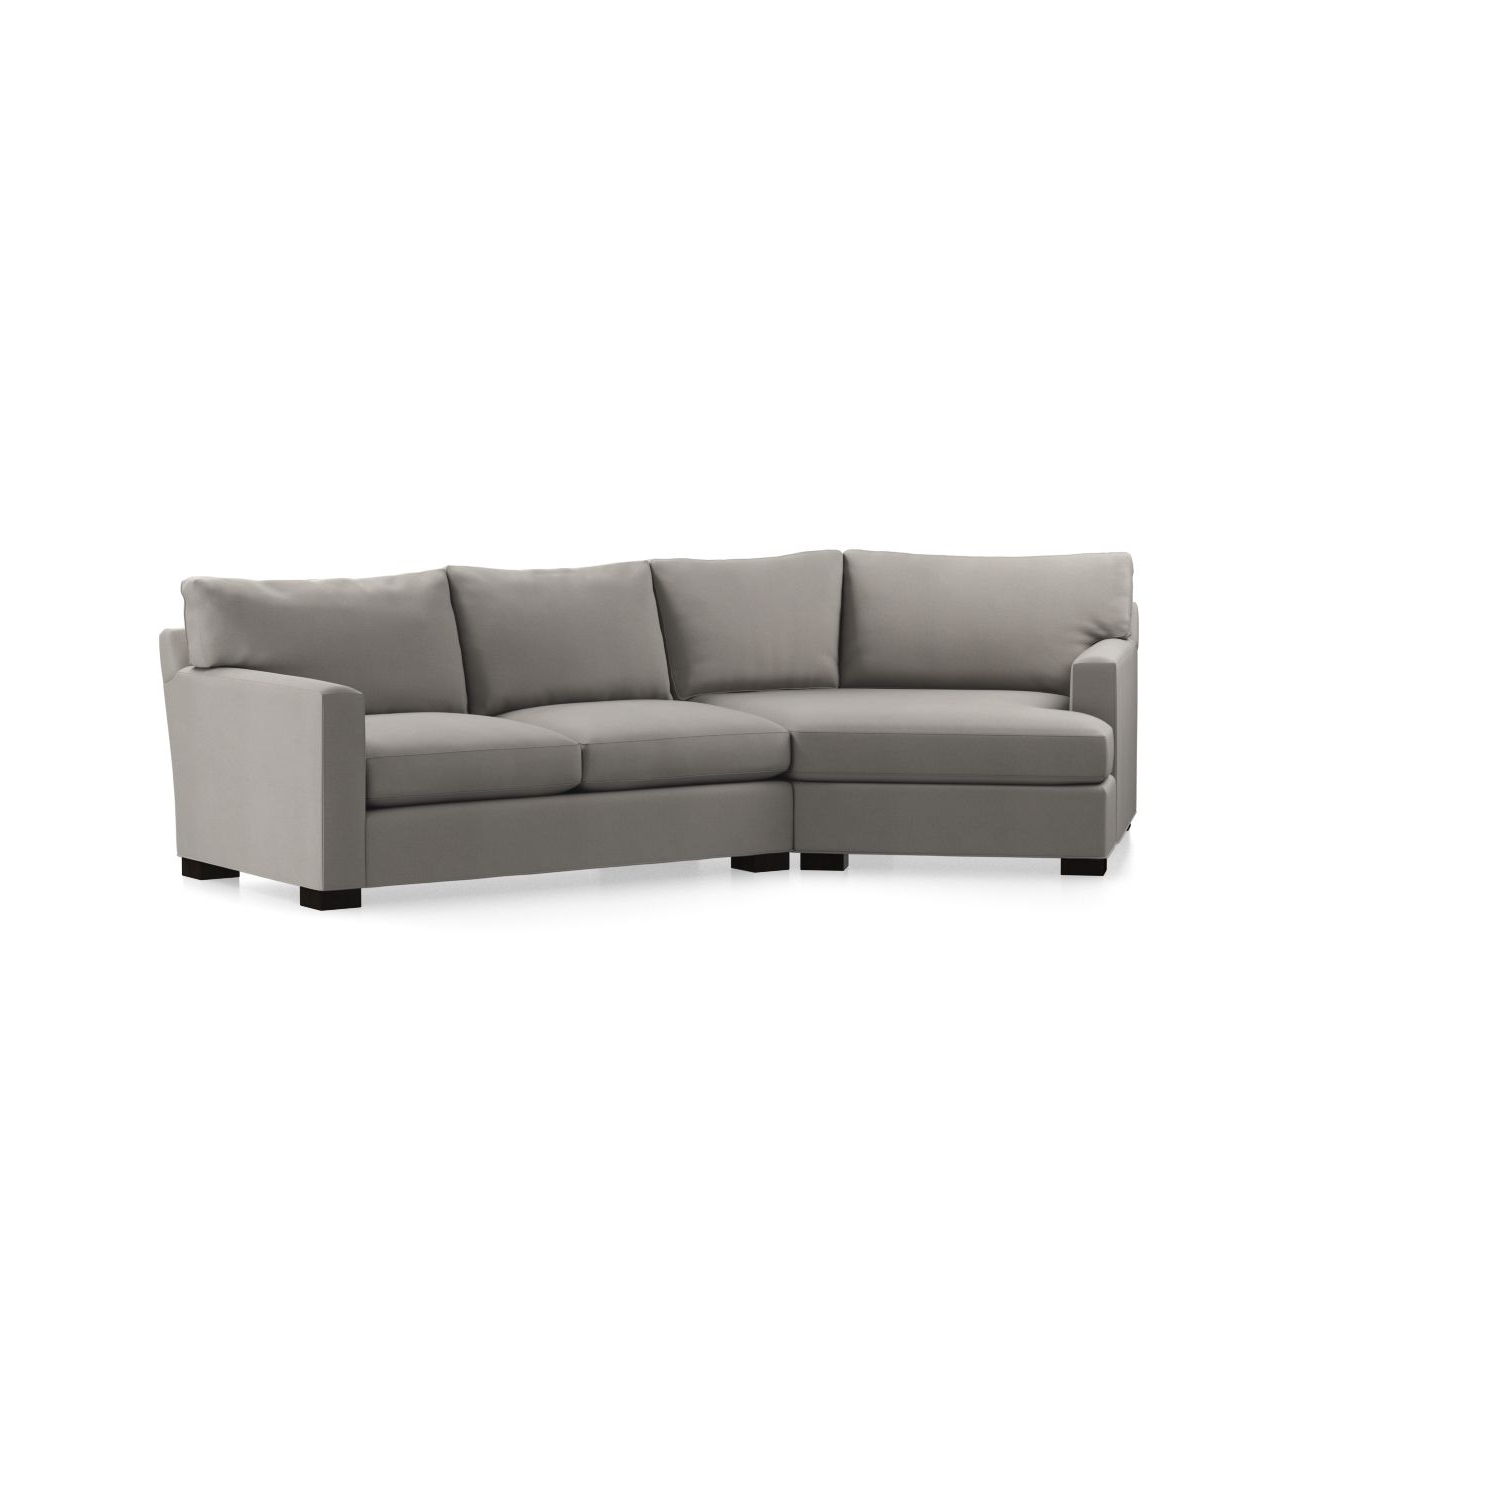 Axis Ii 2 Piece Left Arm Angled Chaise Sectional Sofa In Axis For Most Popular Angled Chaise Sofas (View 13 of 20)